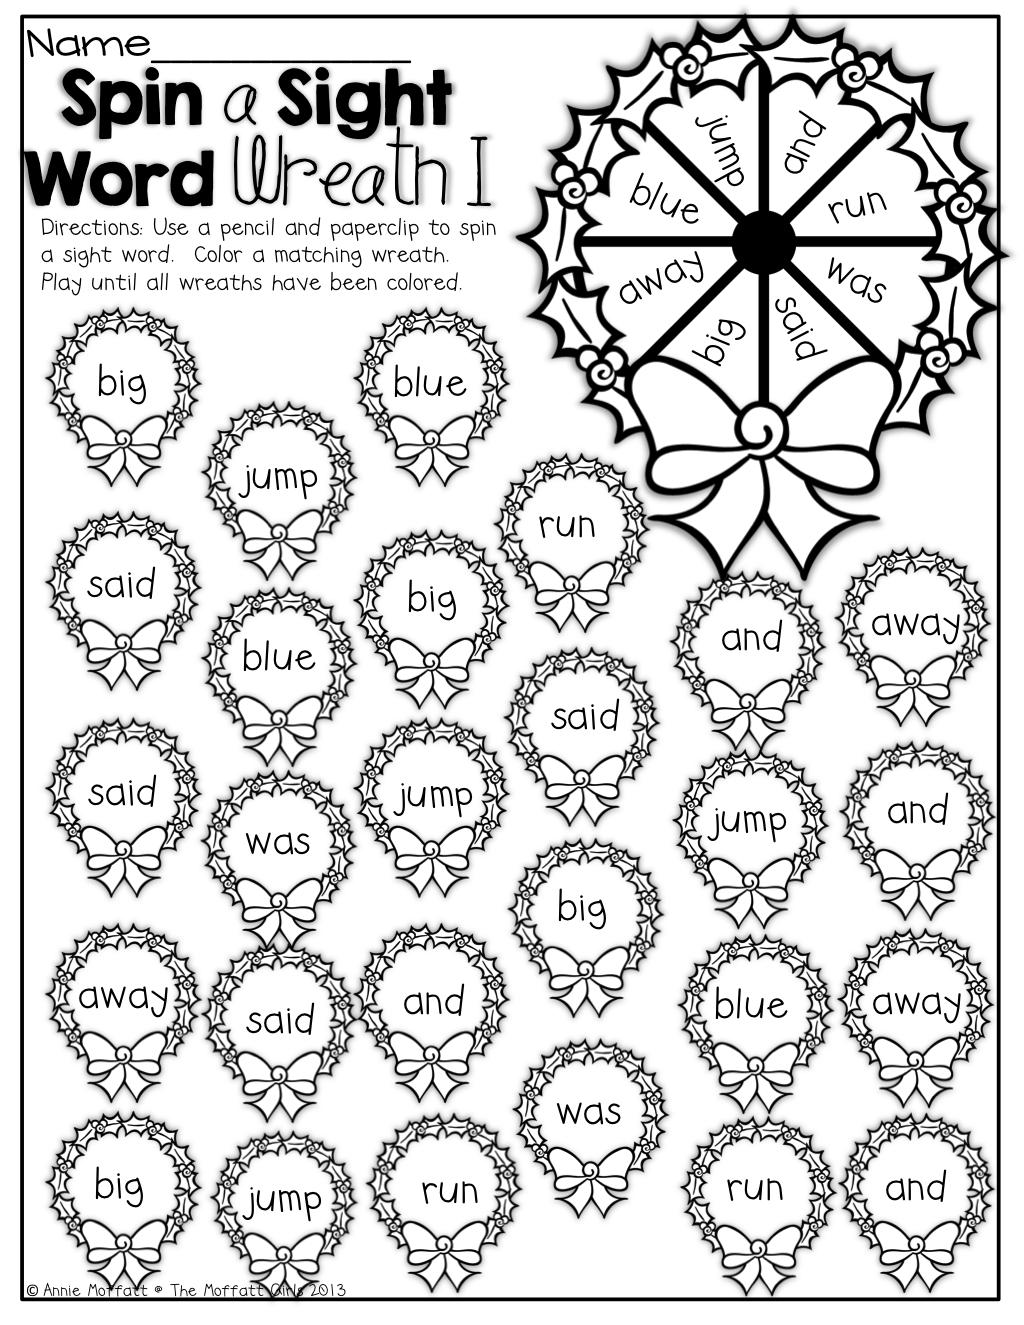 Spin A Sight Word With A Paperclip And Pencil And Color A Matching Leaf Interactive And Fun